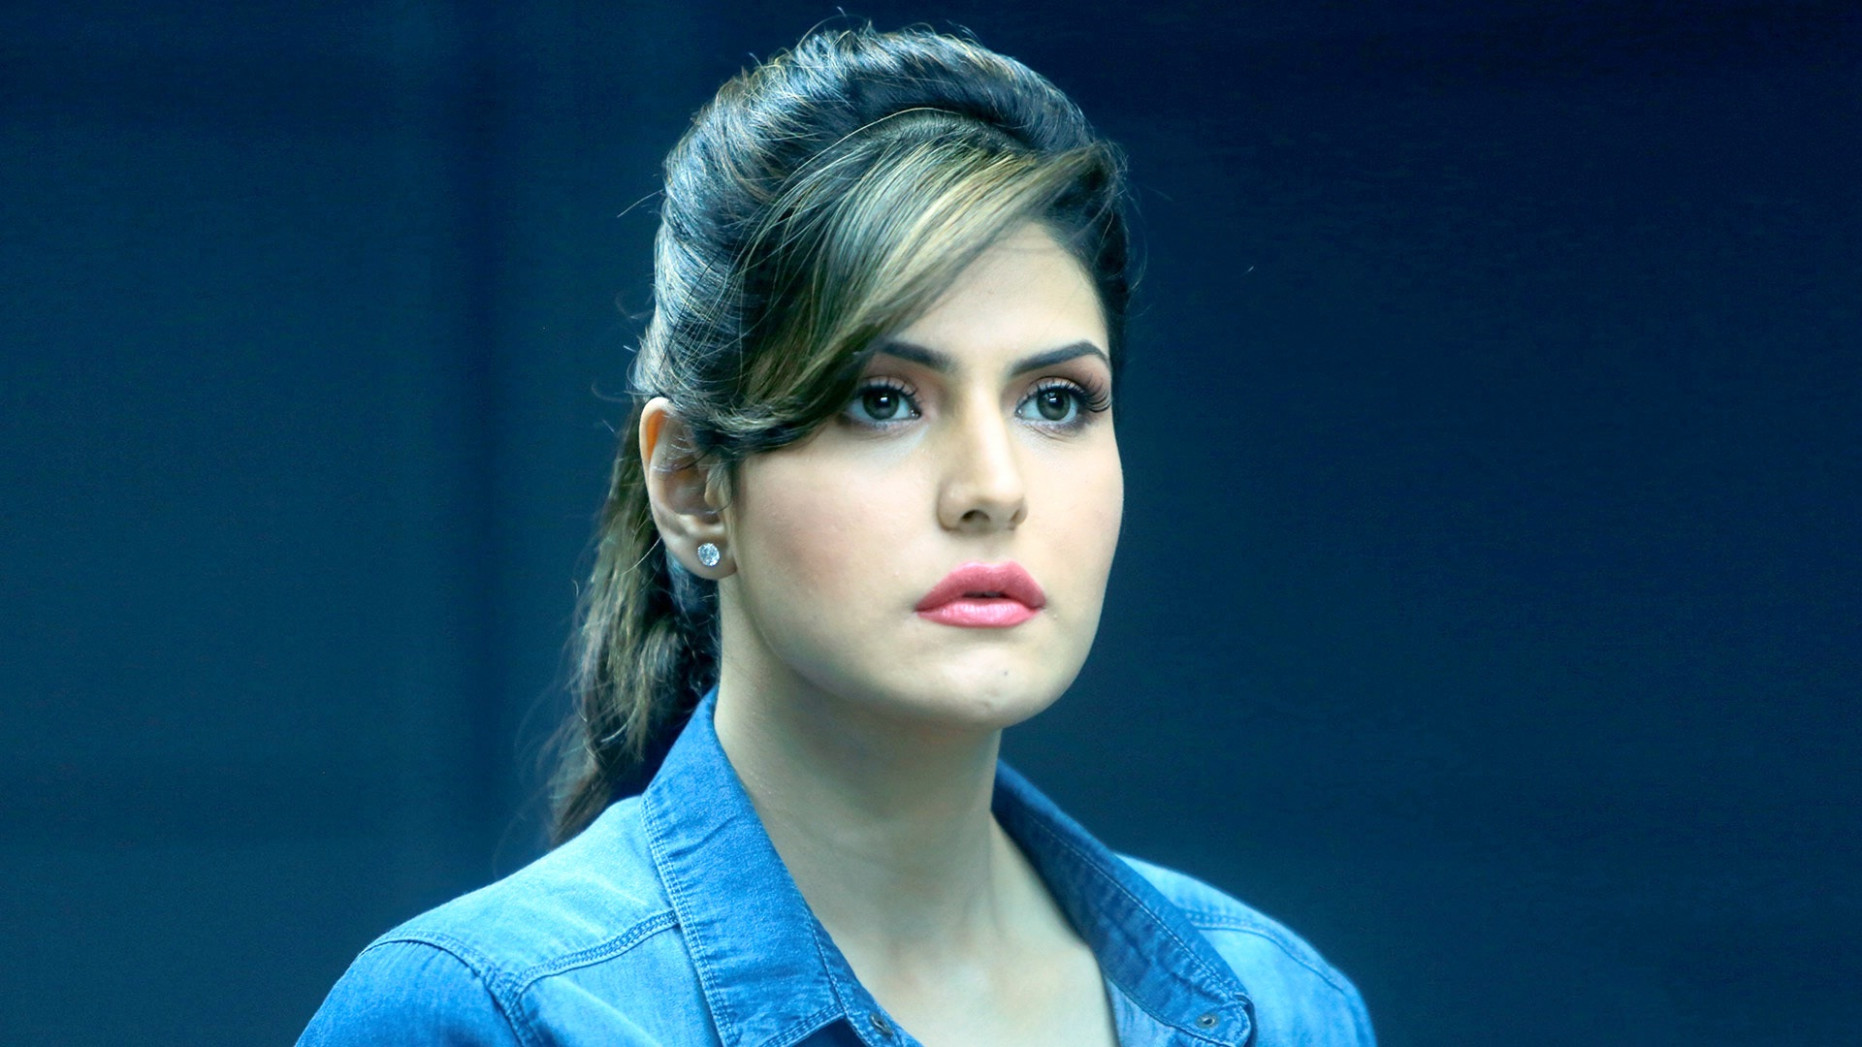 Top Full HD Bollywood Actress Wallpapers HD Wallpapers Pop ...